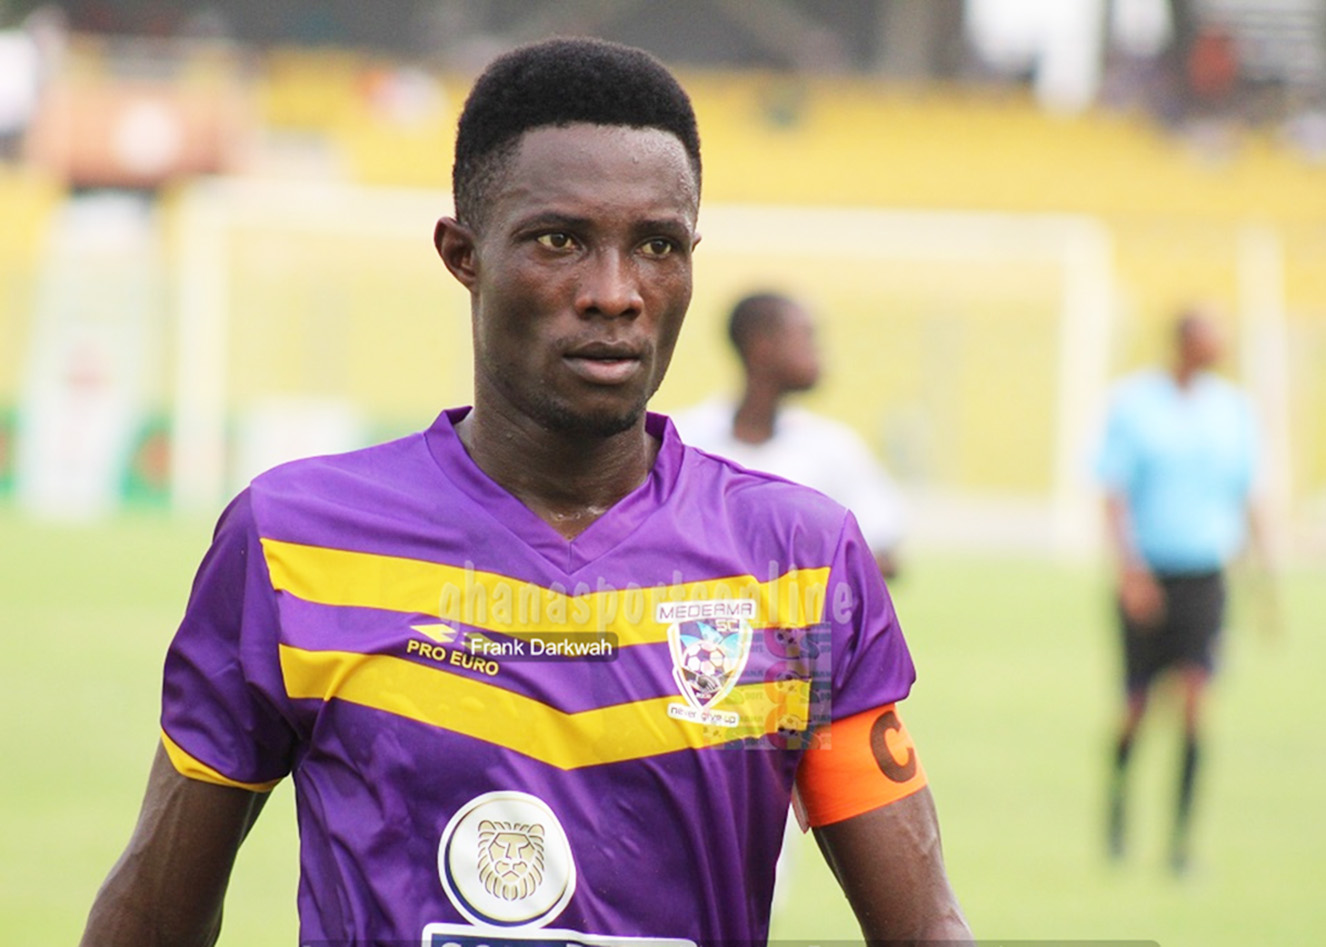 Cancellation of football season affected our flow, says Medeama's Joseph Tetteh Zutah